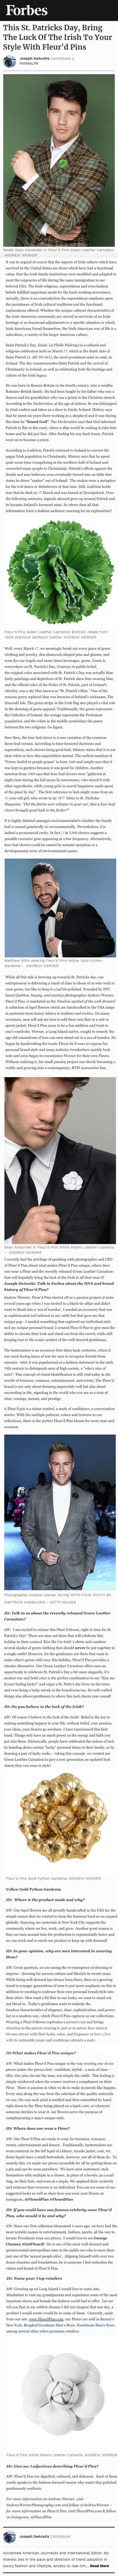 Fleur'd Pins interview with creator Andrew Werner in Forbes Magazine March 2019.jpg